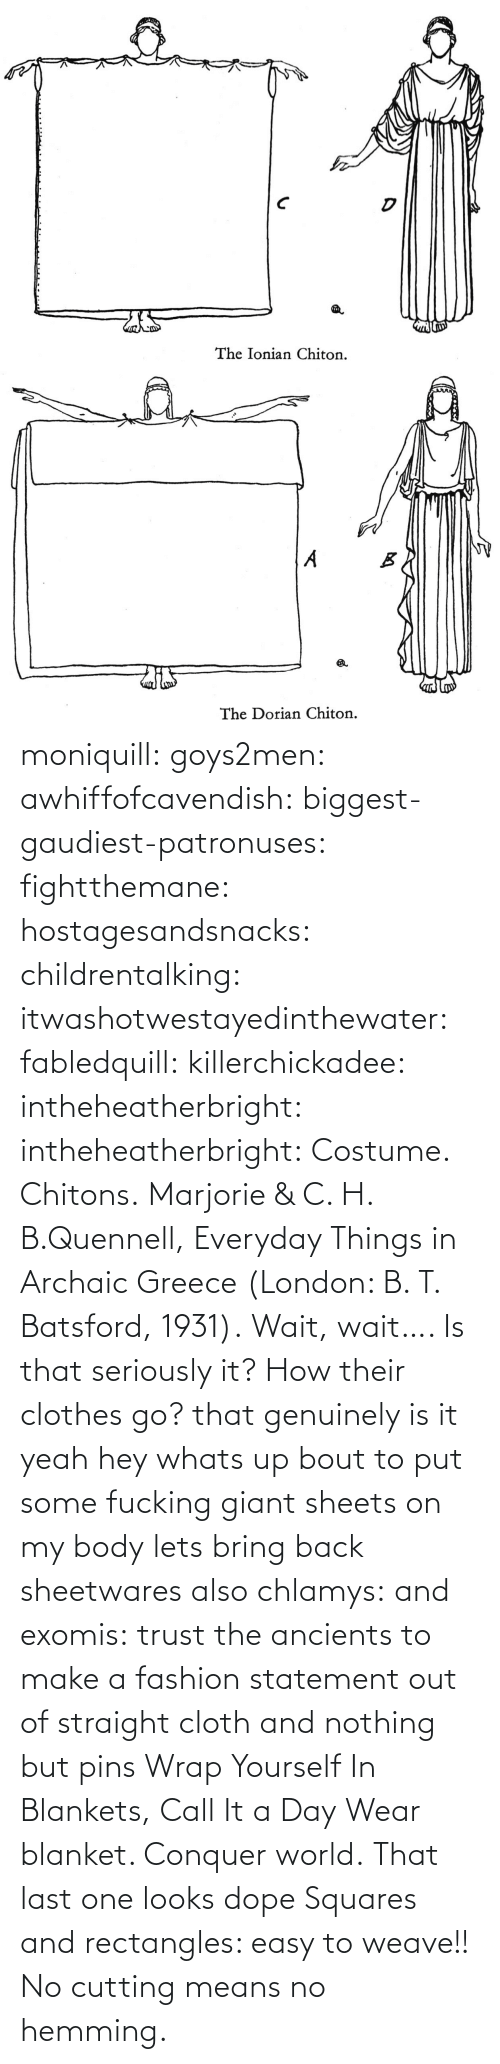 html: moniquill: goys2men:  awhiffofcavendish:  biggest-gaudiest-patronuses:  fightthemane:  hostagesandsnacks:  childrentalking:  itwashotwestayedinthewater:  fabledquill:  killerchickadee:  intheheatherbright:  intheheatherbright:  Costume. Chitons.  Marjorie & C. H. B.Quennell, Everyday Things in Archaic Greece (London: B. T. Batsford, 1931).  Wait, wait…. Is that seriously it? How their clothes go?  that genuinely is it  yeah hey whats up bout to put some fucking giant sheets on my body  lets bring back sheetwares  also chlamys: and exomis:  trust the ancients to make a fashion statement out of straight cloth and nothing but pins  Wrap Yourself In Blankets, Call It a Day  Wear blanket. Conquer world.   That last one looks dope    Squares and rectangles: easy to weave!! No cutting means no hemming.